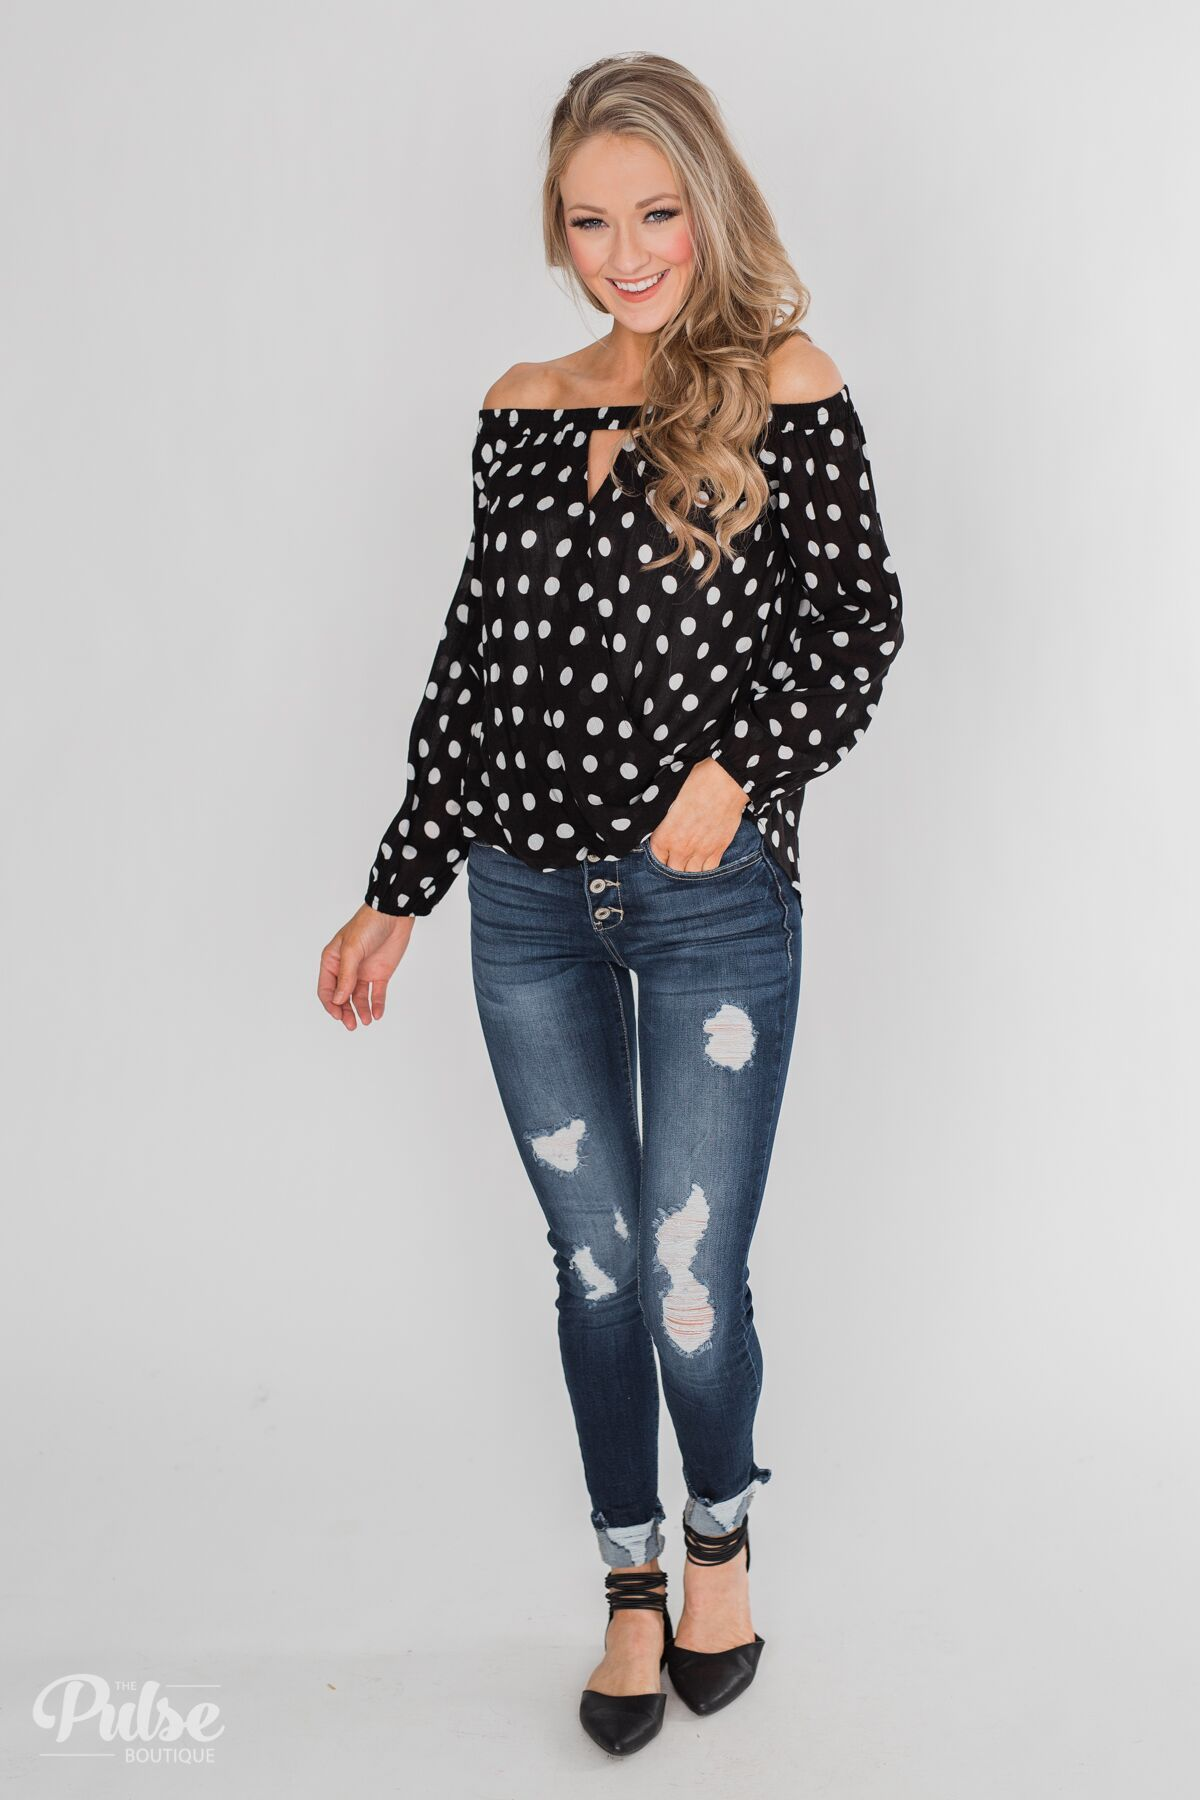 5b718644dc99a8 Wrapped Up In Polka Dots Off The Shoulder Blouse Outfit – The Pulse Boutique